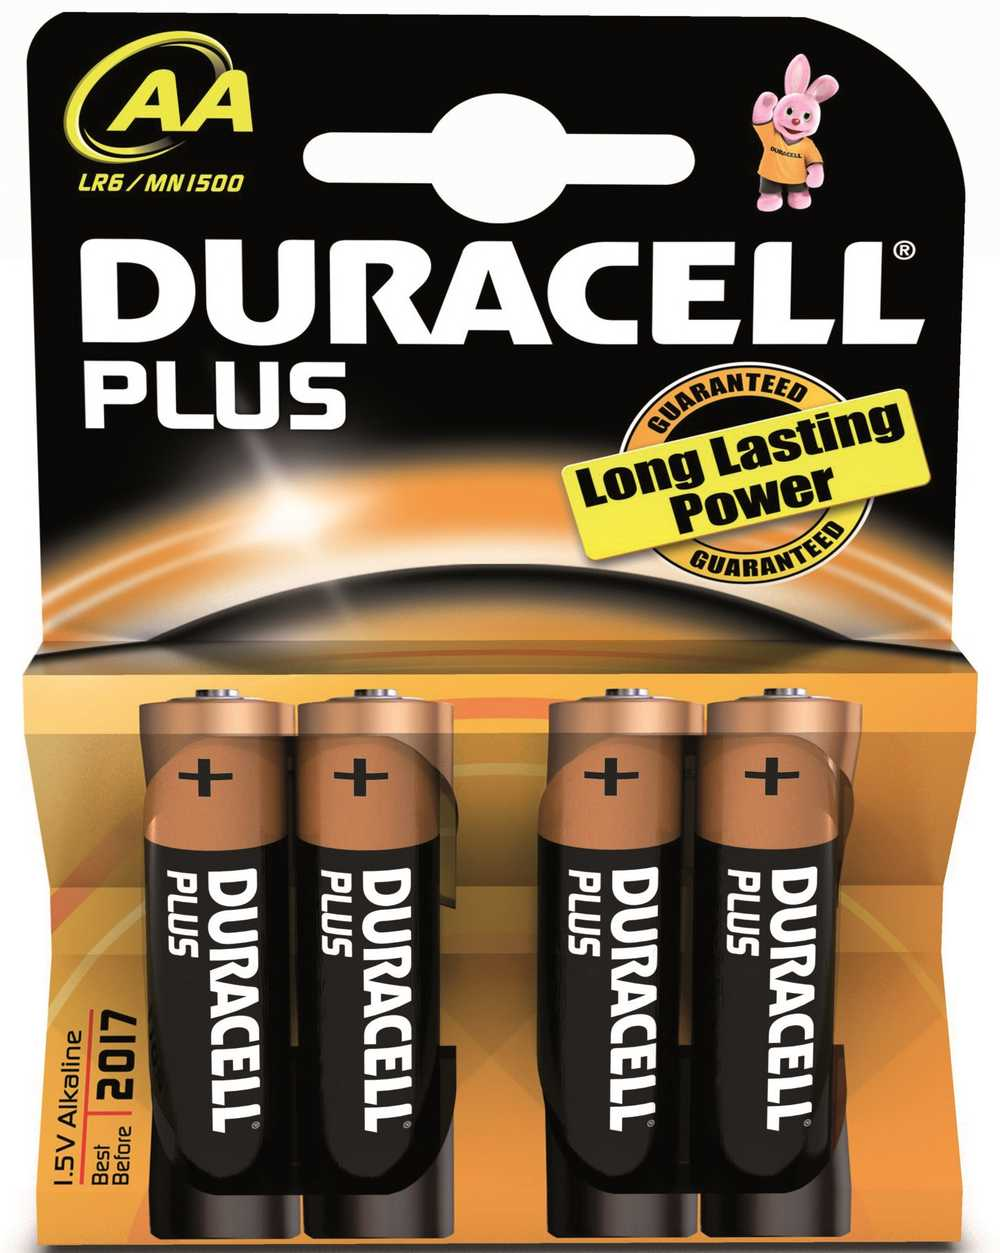 DURACELL ALK PLUS AA 1.5V 4ST